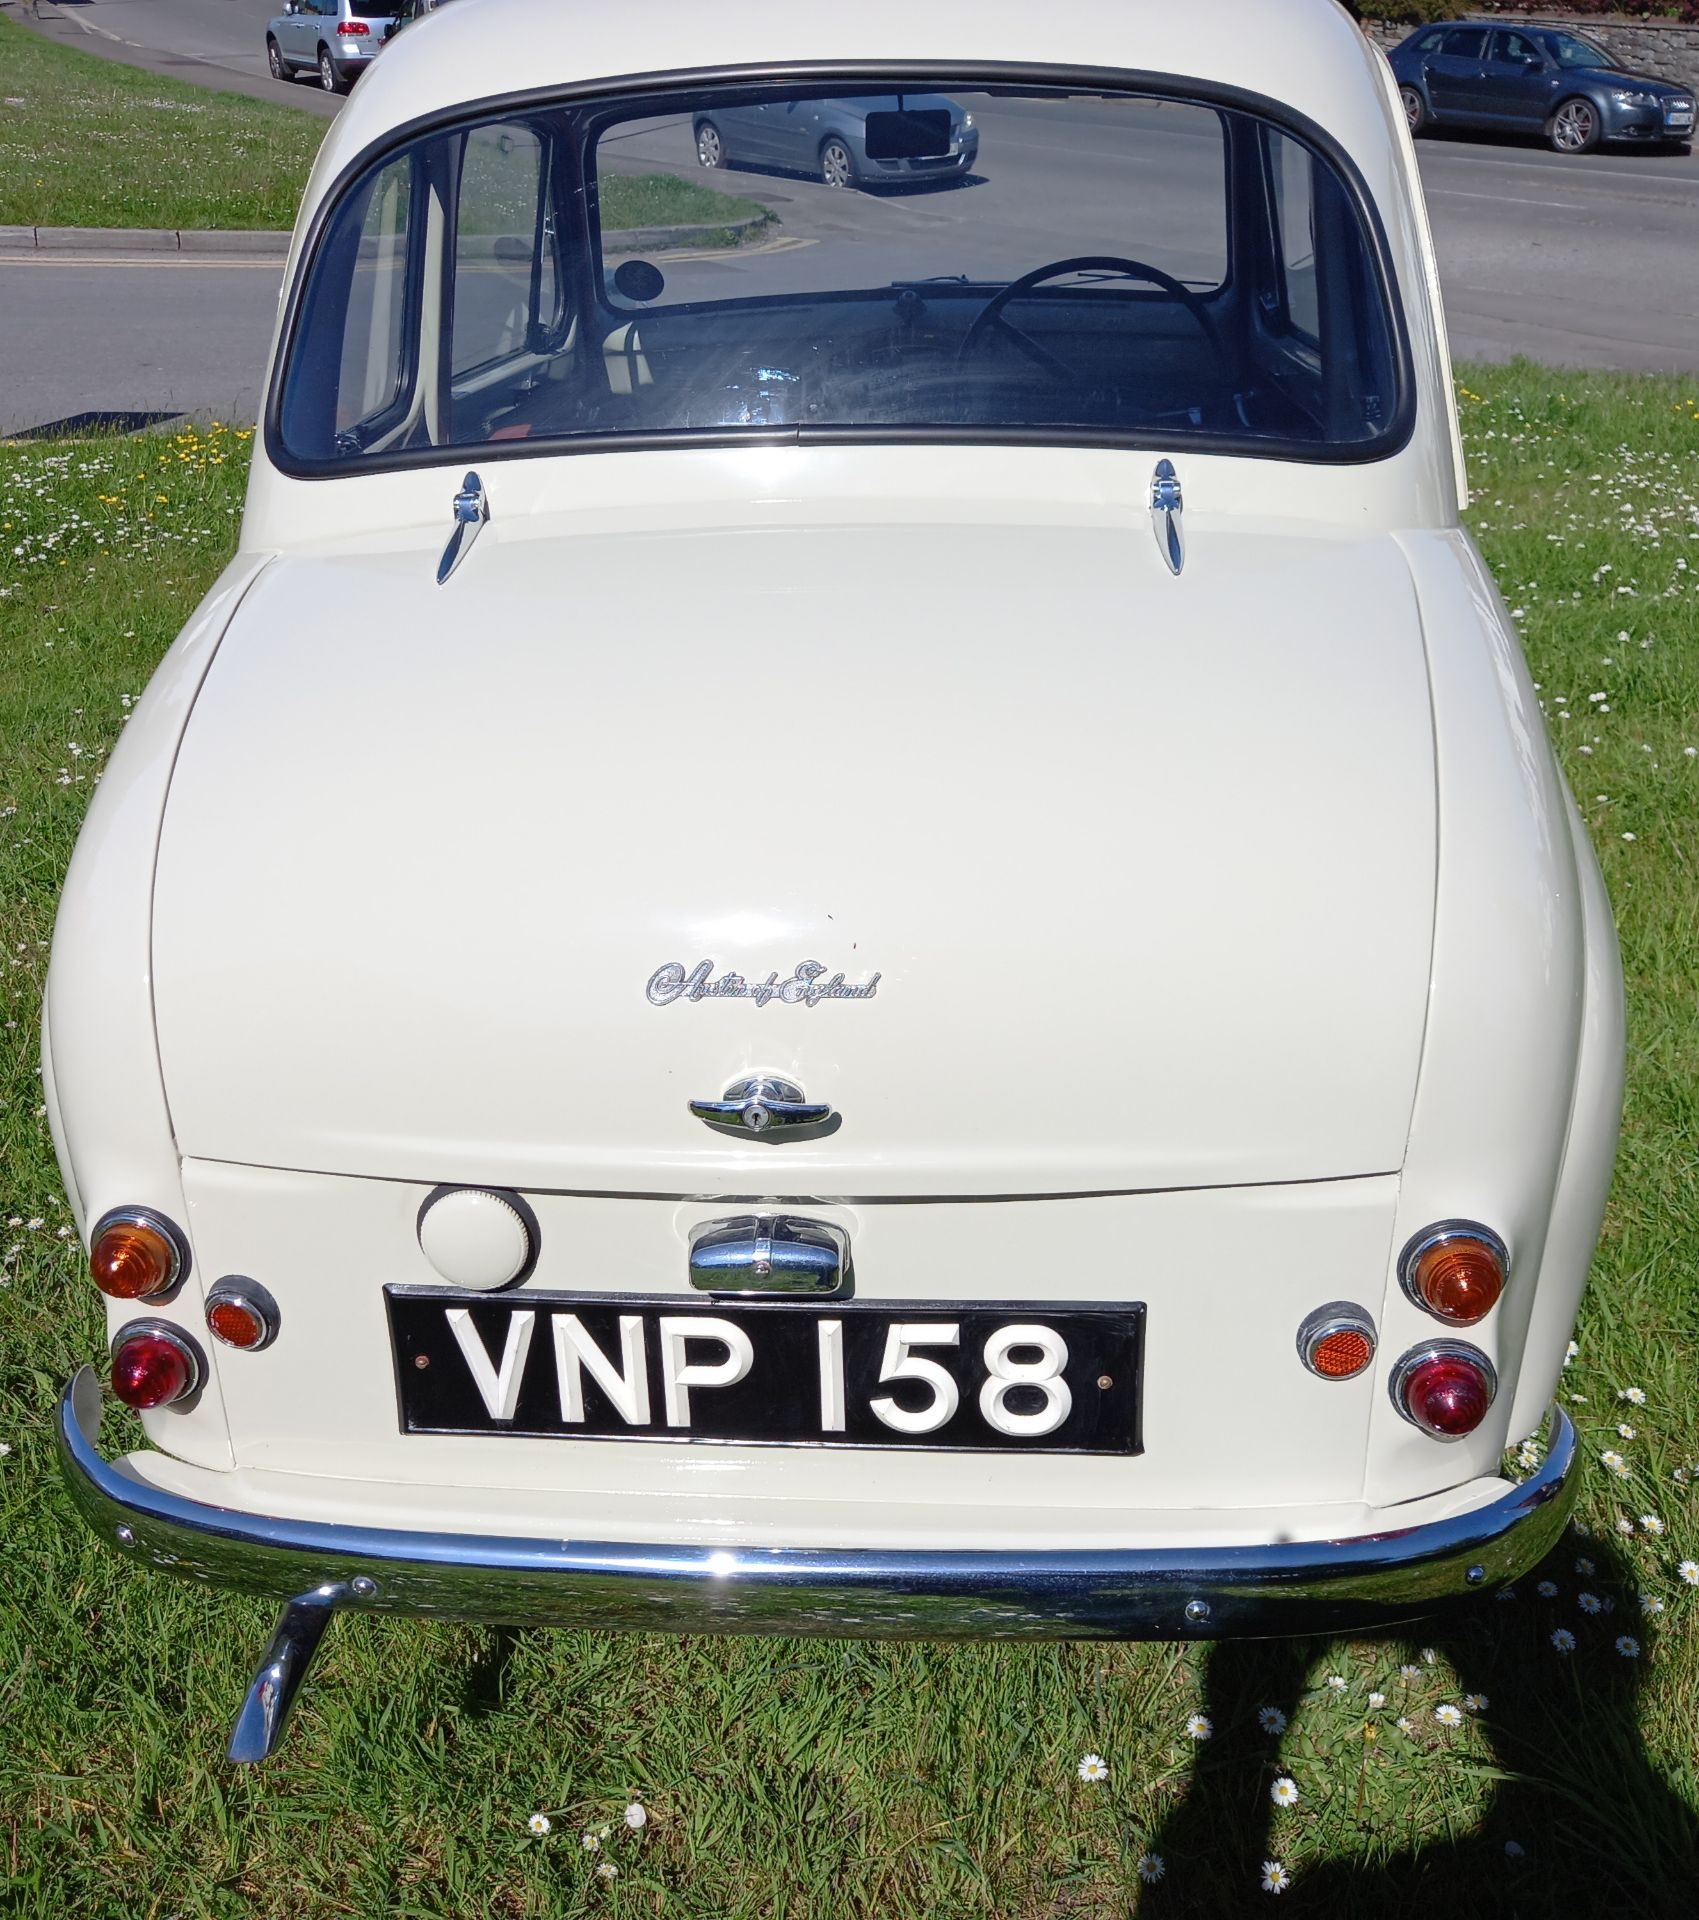 VNP 158 - 1958 AUSTIN A35 SALOON - 948CC - FULLY RESTORED CLASSIC CAR - Image 5 of 24